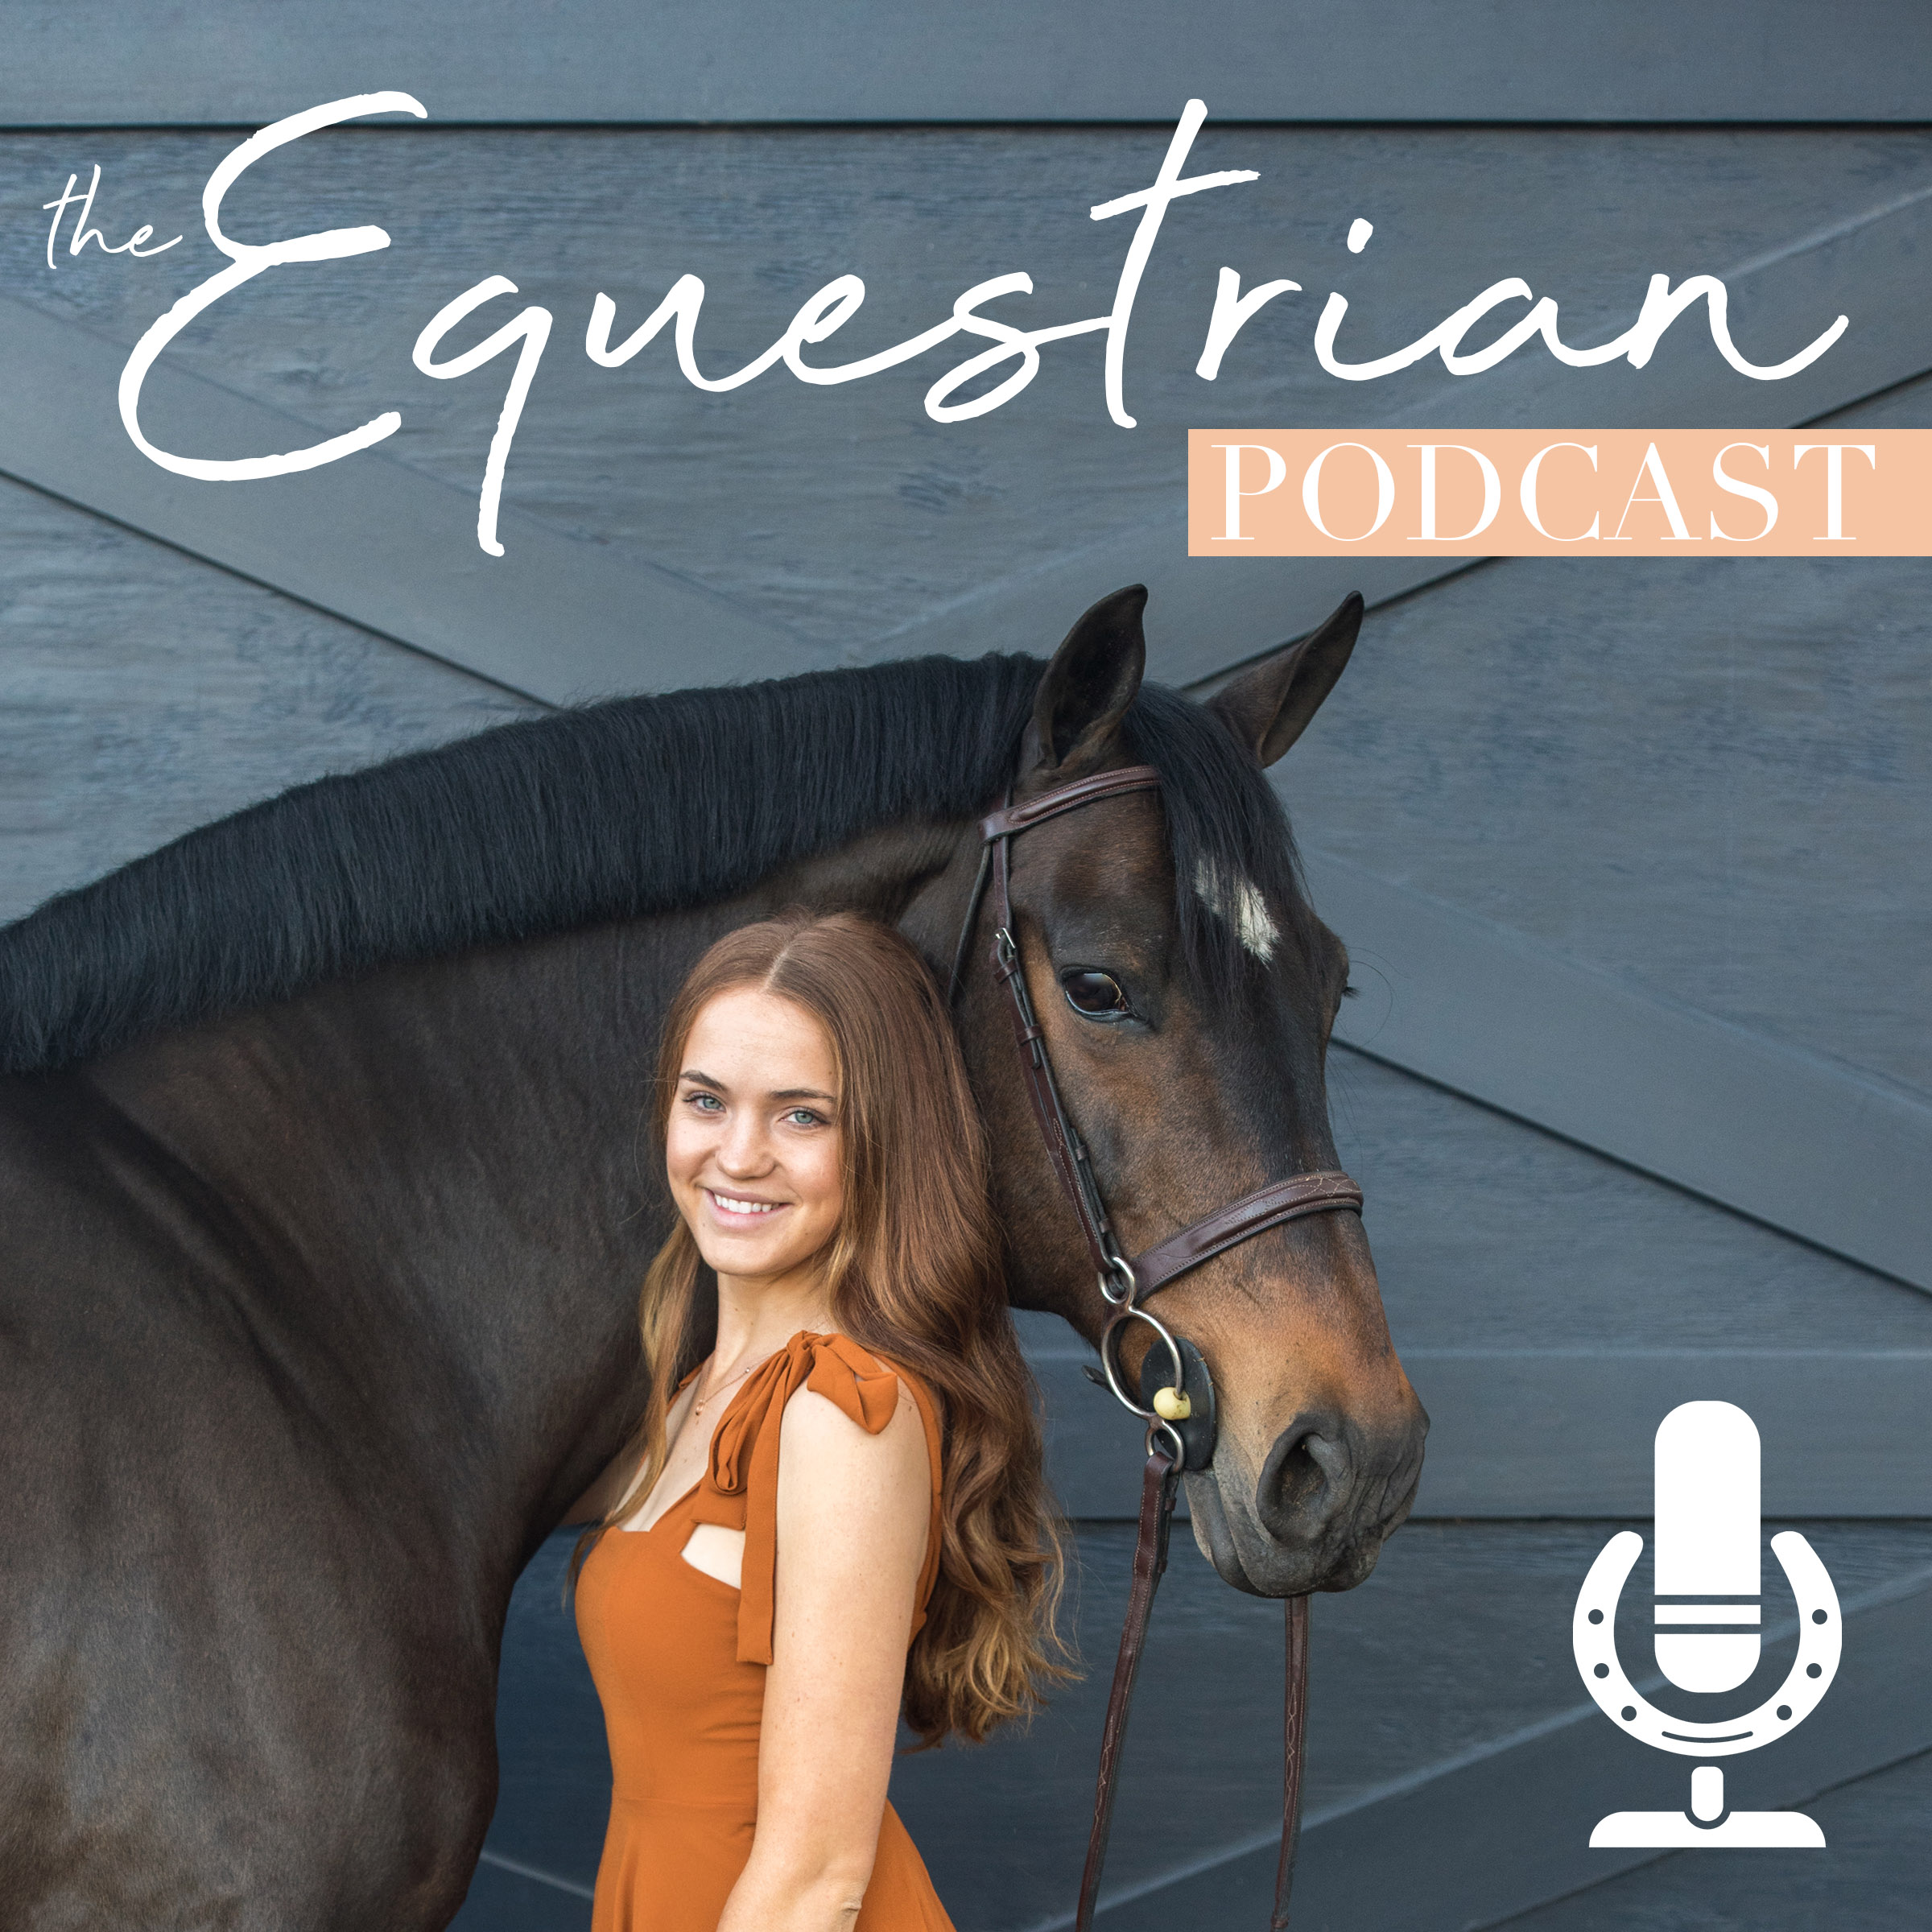 The Equestrian Podcast